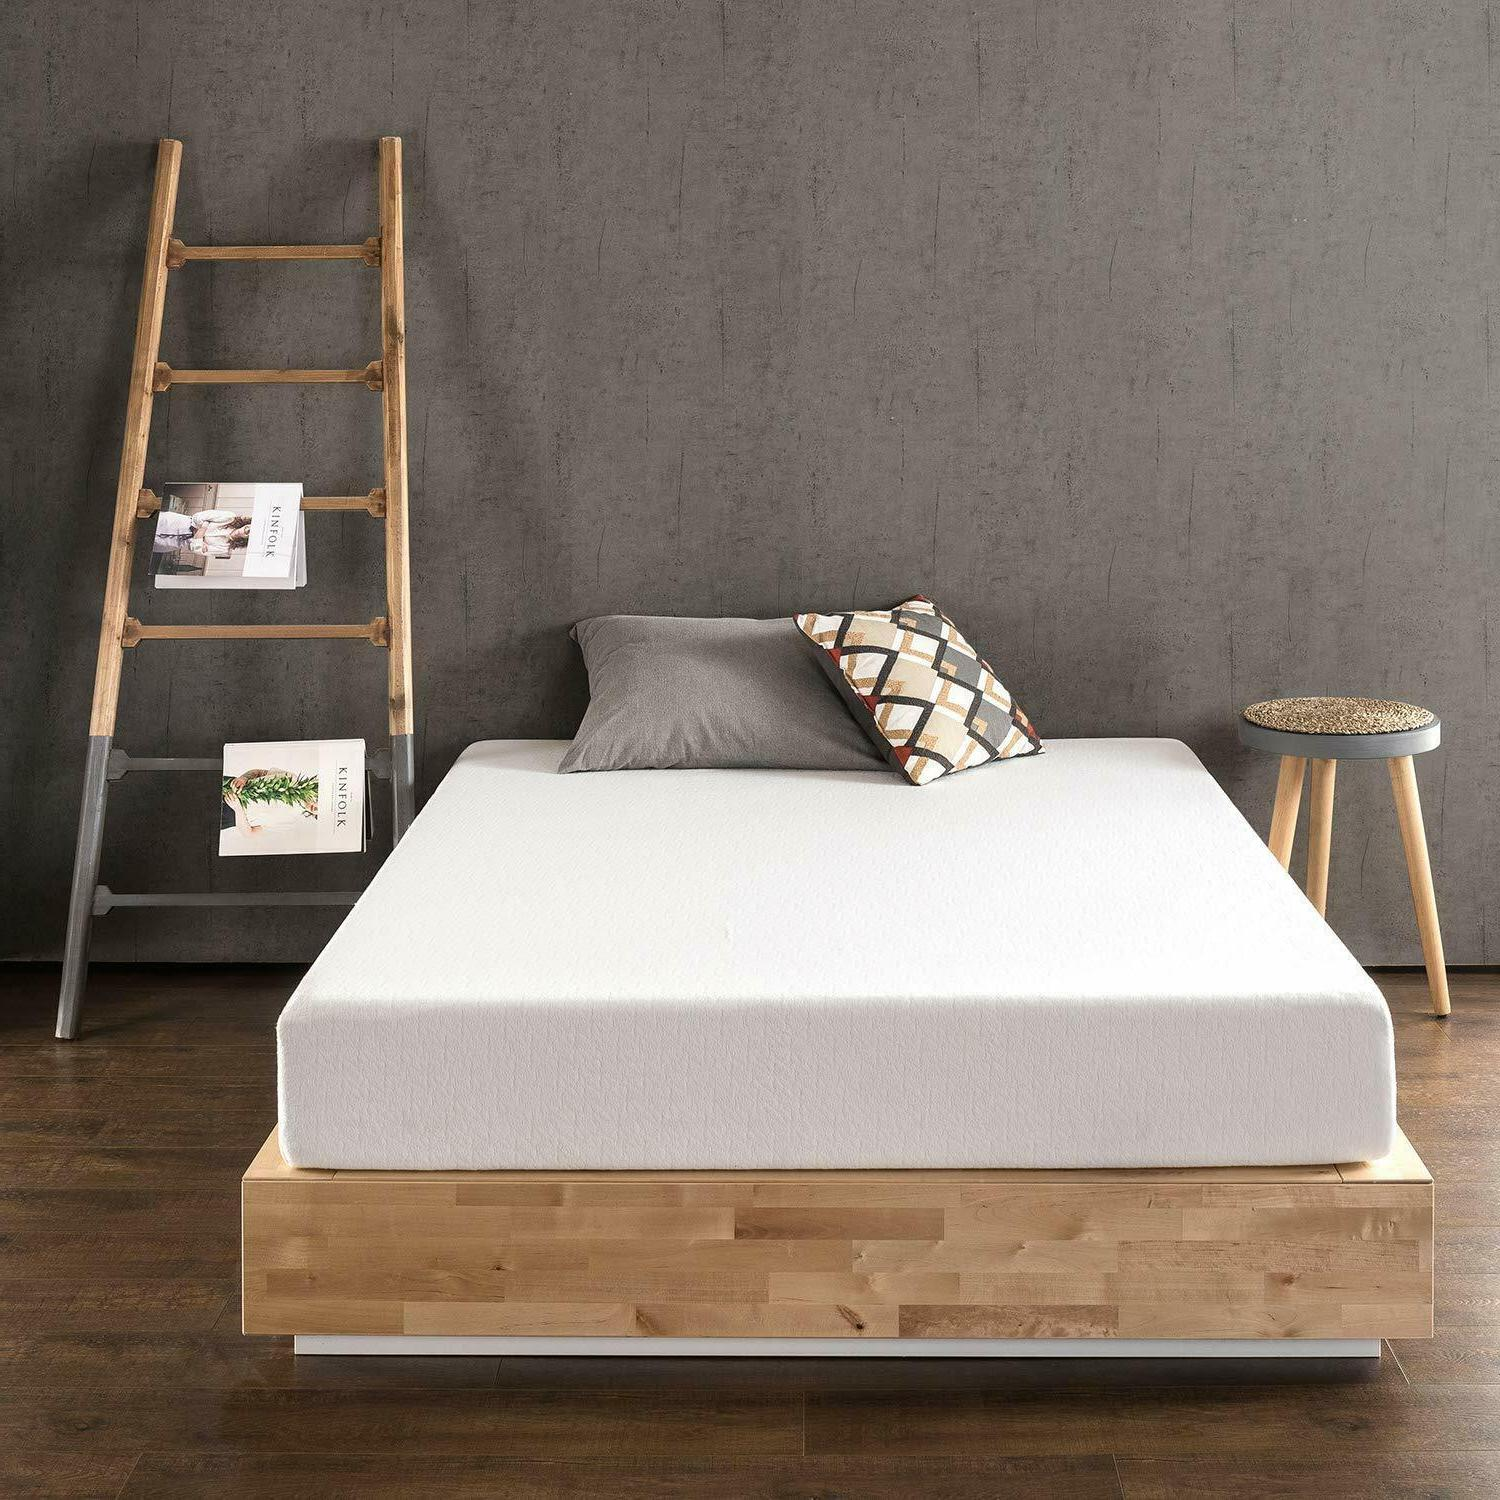 Best Price 10 Inch Memory Foam Body Conforming Mattress King